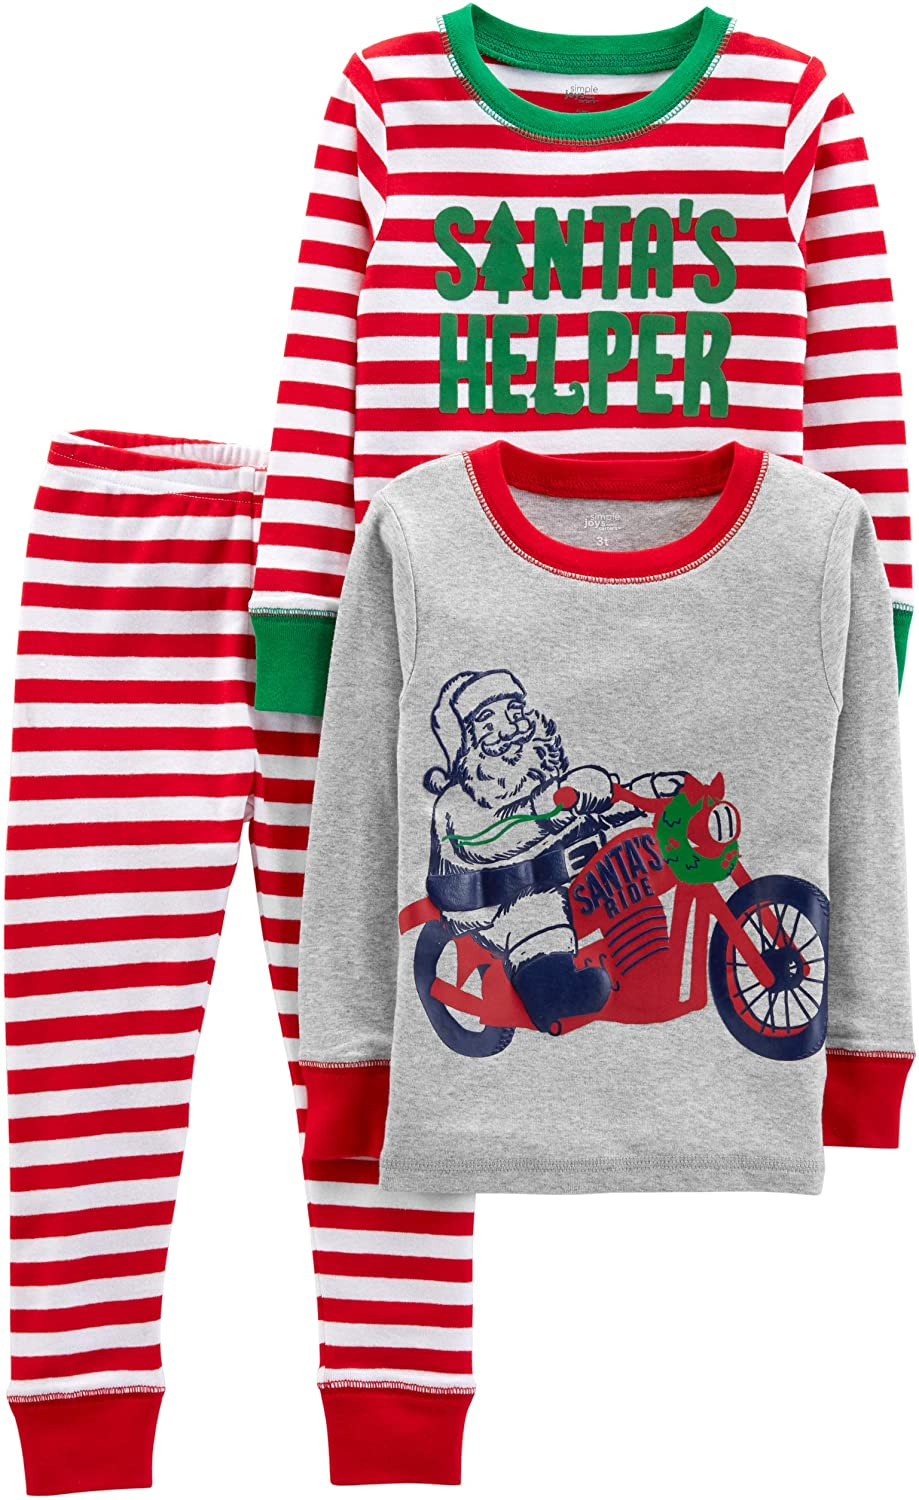 Simple Joys by Carter's Baby, Little Kid, and Toddler Boys' 3-Piece Snug-Fit Cotton Christmas Pajama Set: Clothing